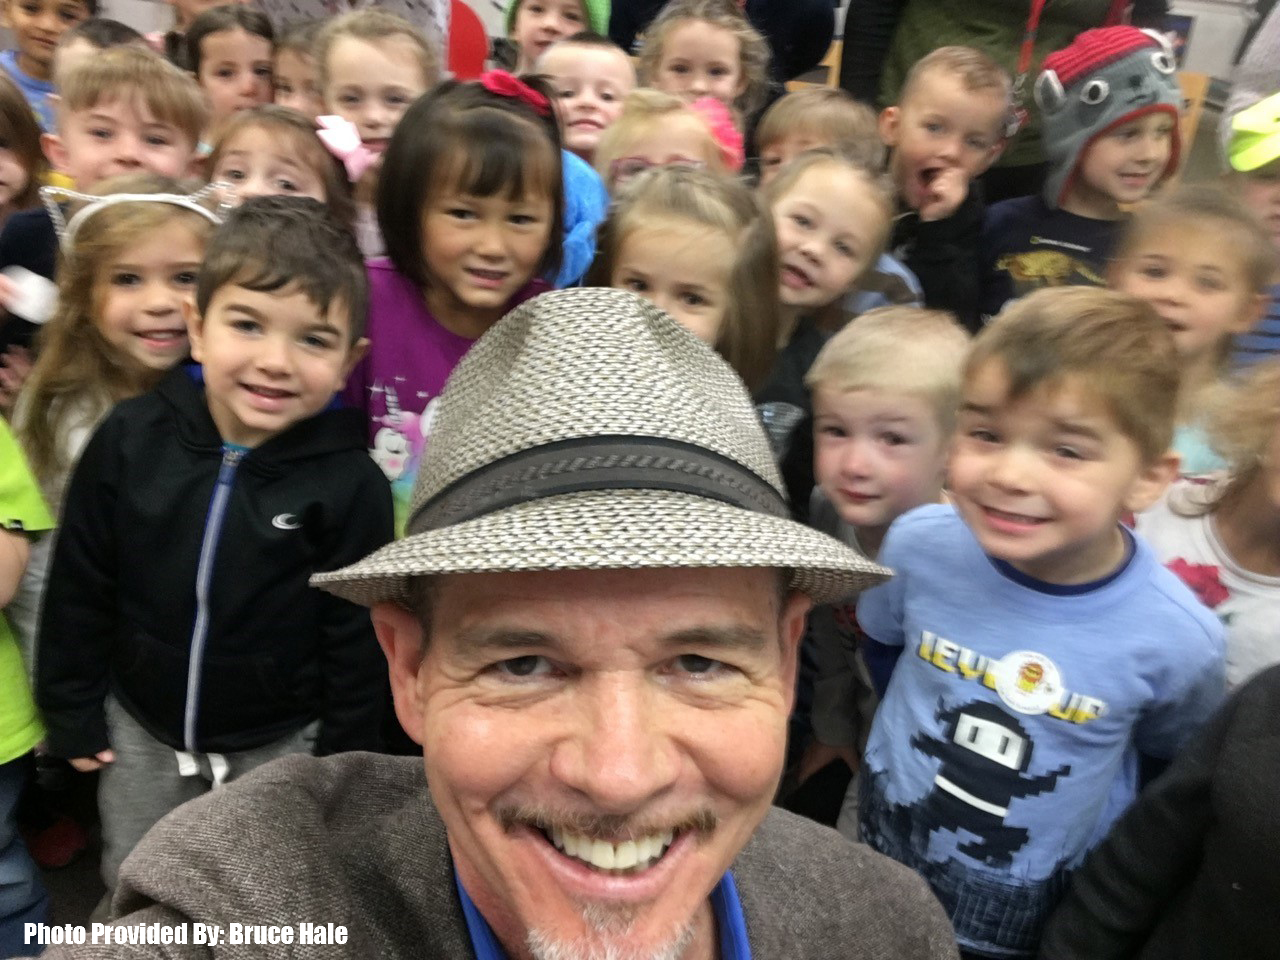 bruce hale taking selfie with students